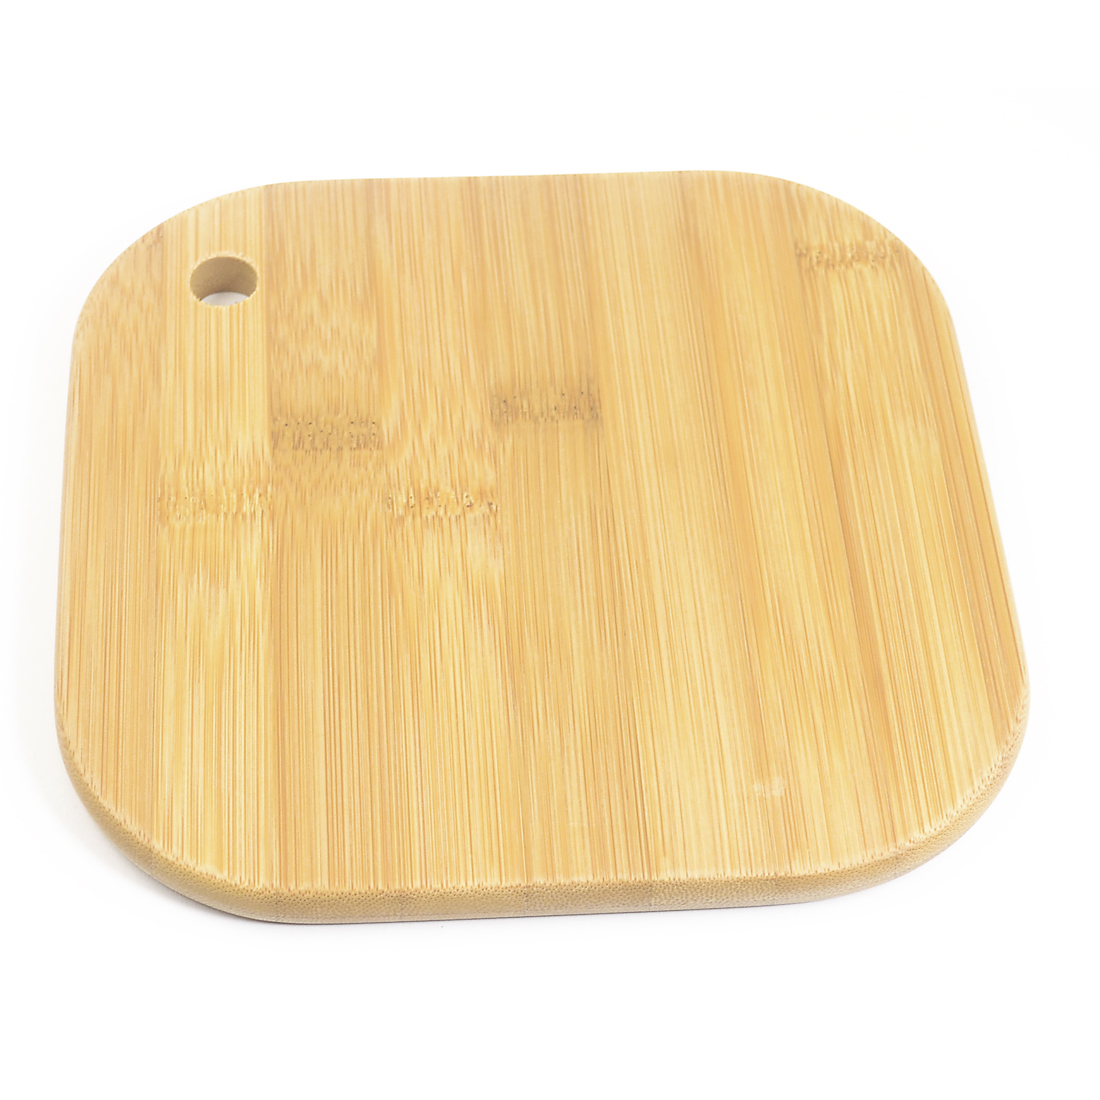 "Home Kitchen Bamboo Chopping Cutting Board Block 7"" Wide"